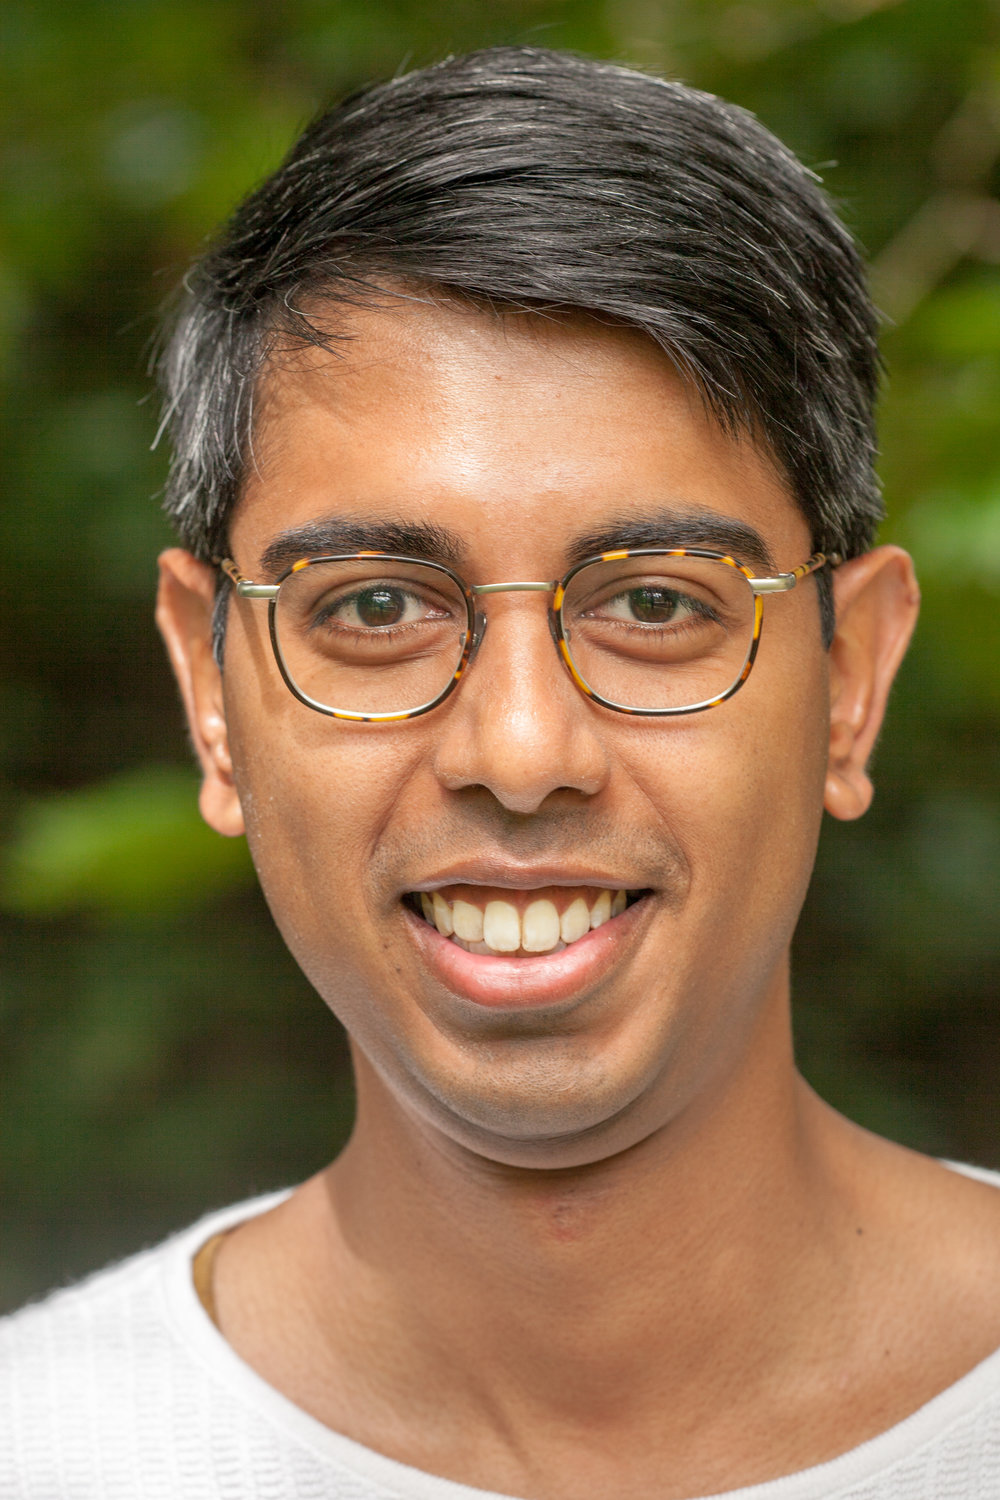 Navin Ramakrishna - Wellcome Trust 4yr PhD Programme - Developmental Mechanisms and A*STAR Singapore Scholar MBiochem 2014 University of Oxfordnr384@cam.ac.uk@NavinBrian